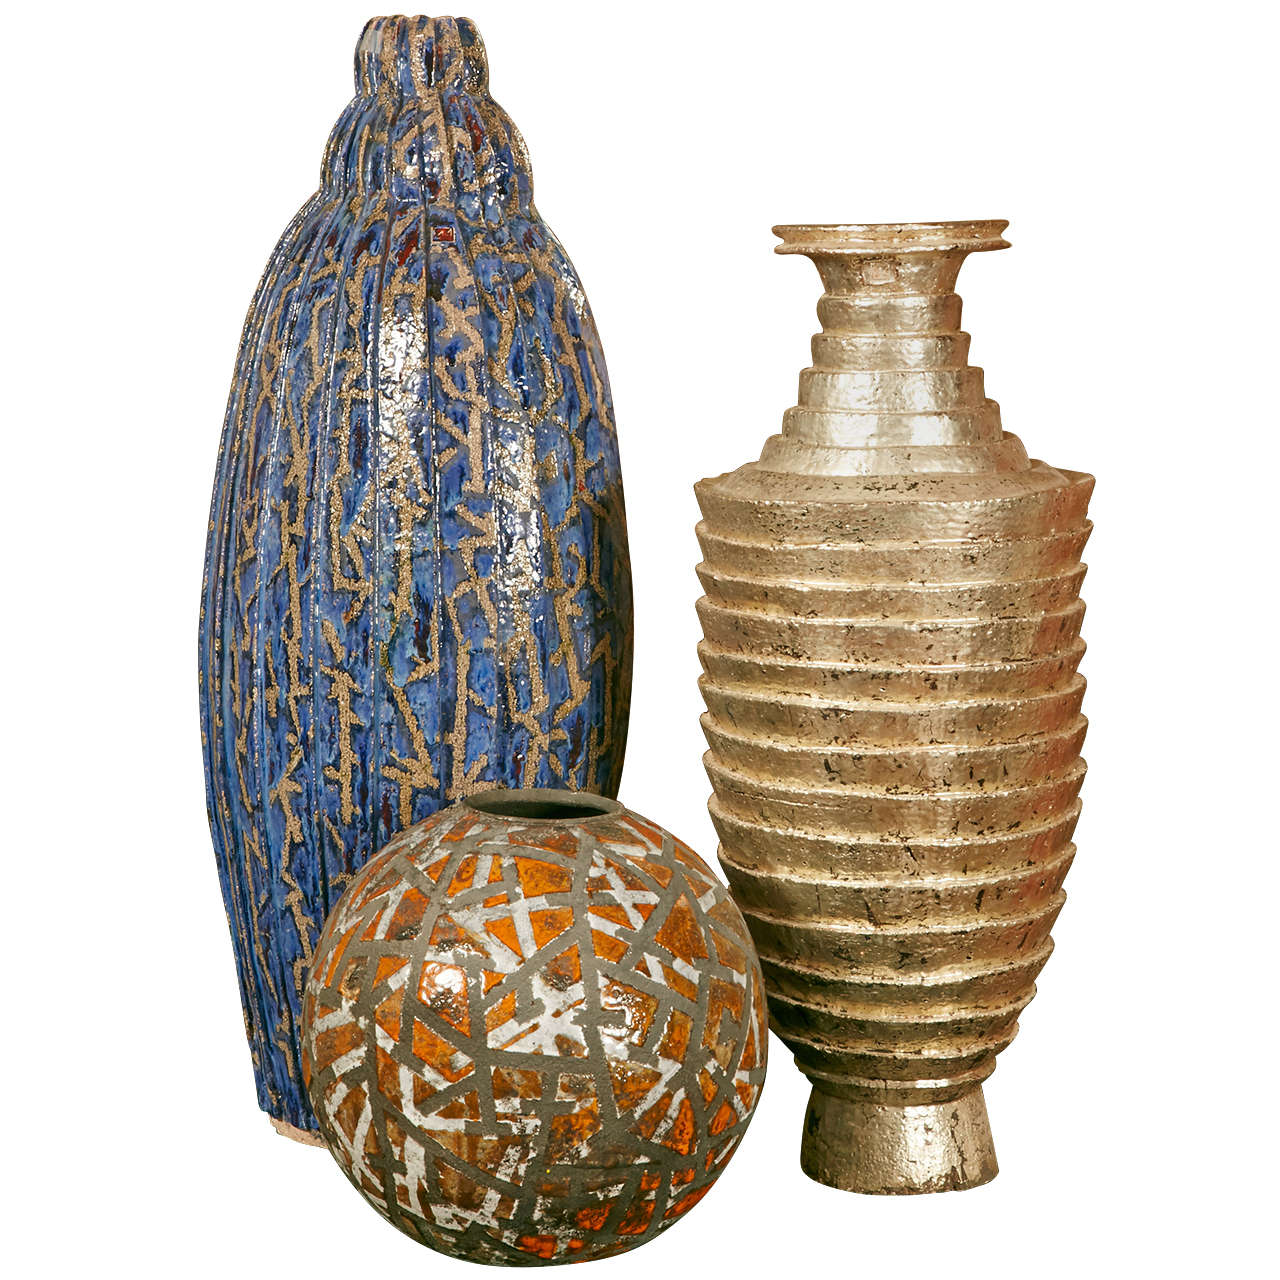 Important Ceramic Vases Collection by French Designer Da Silva